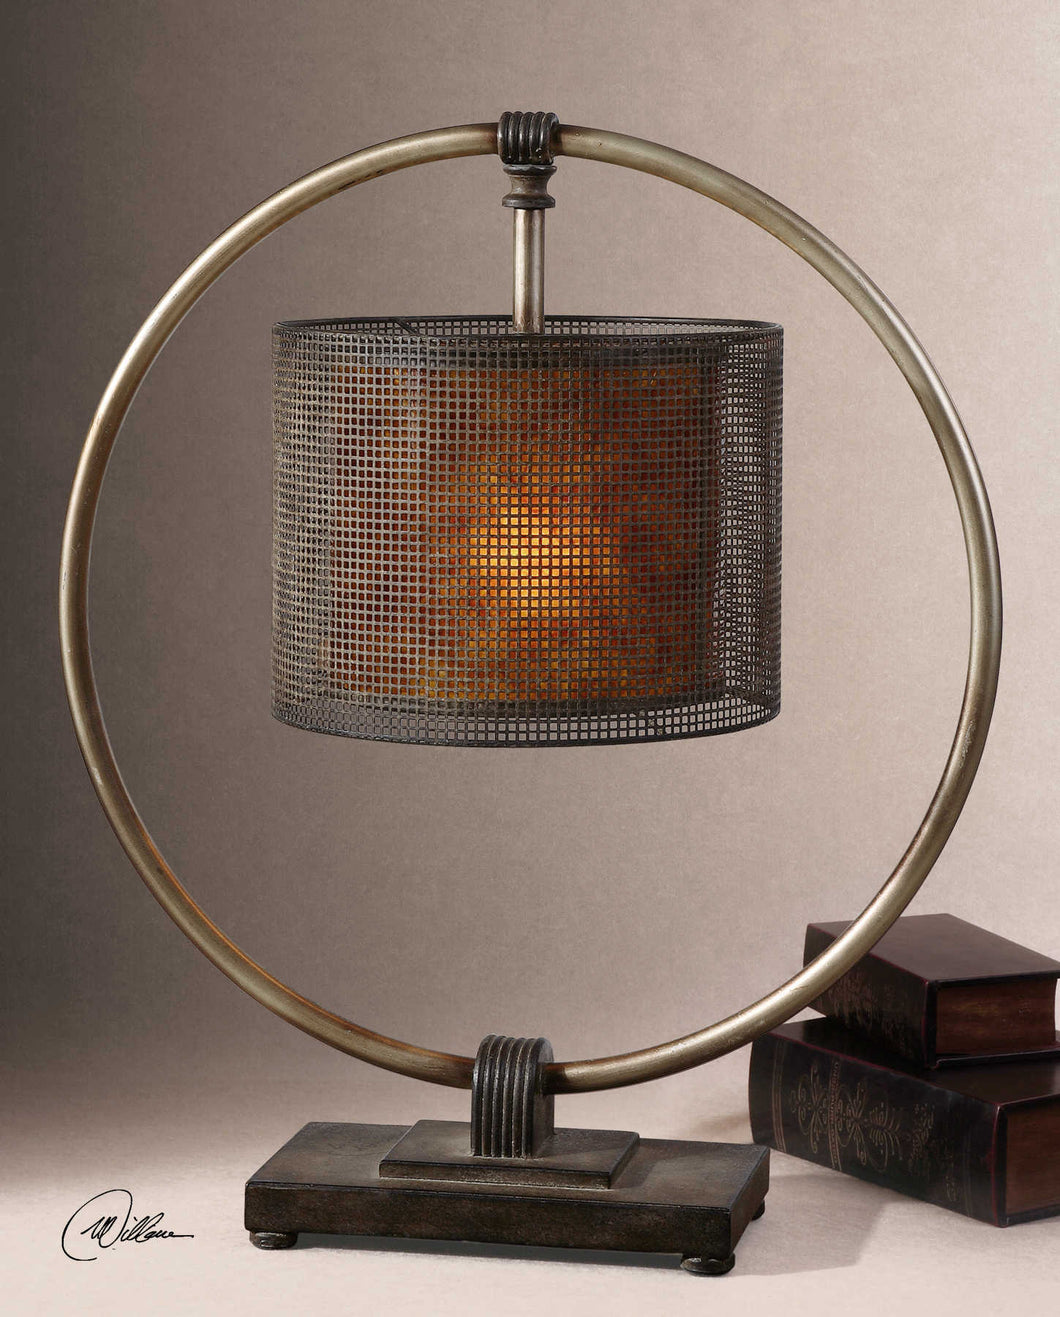 DALOU TABLE LAMP